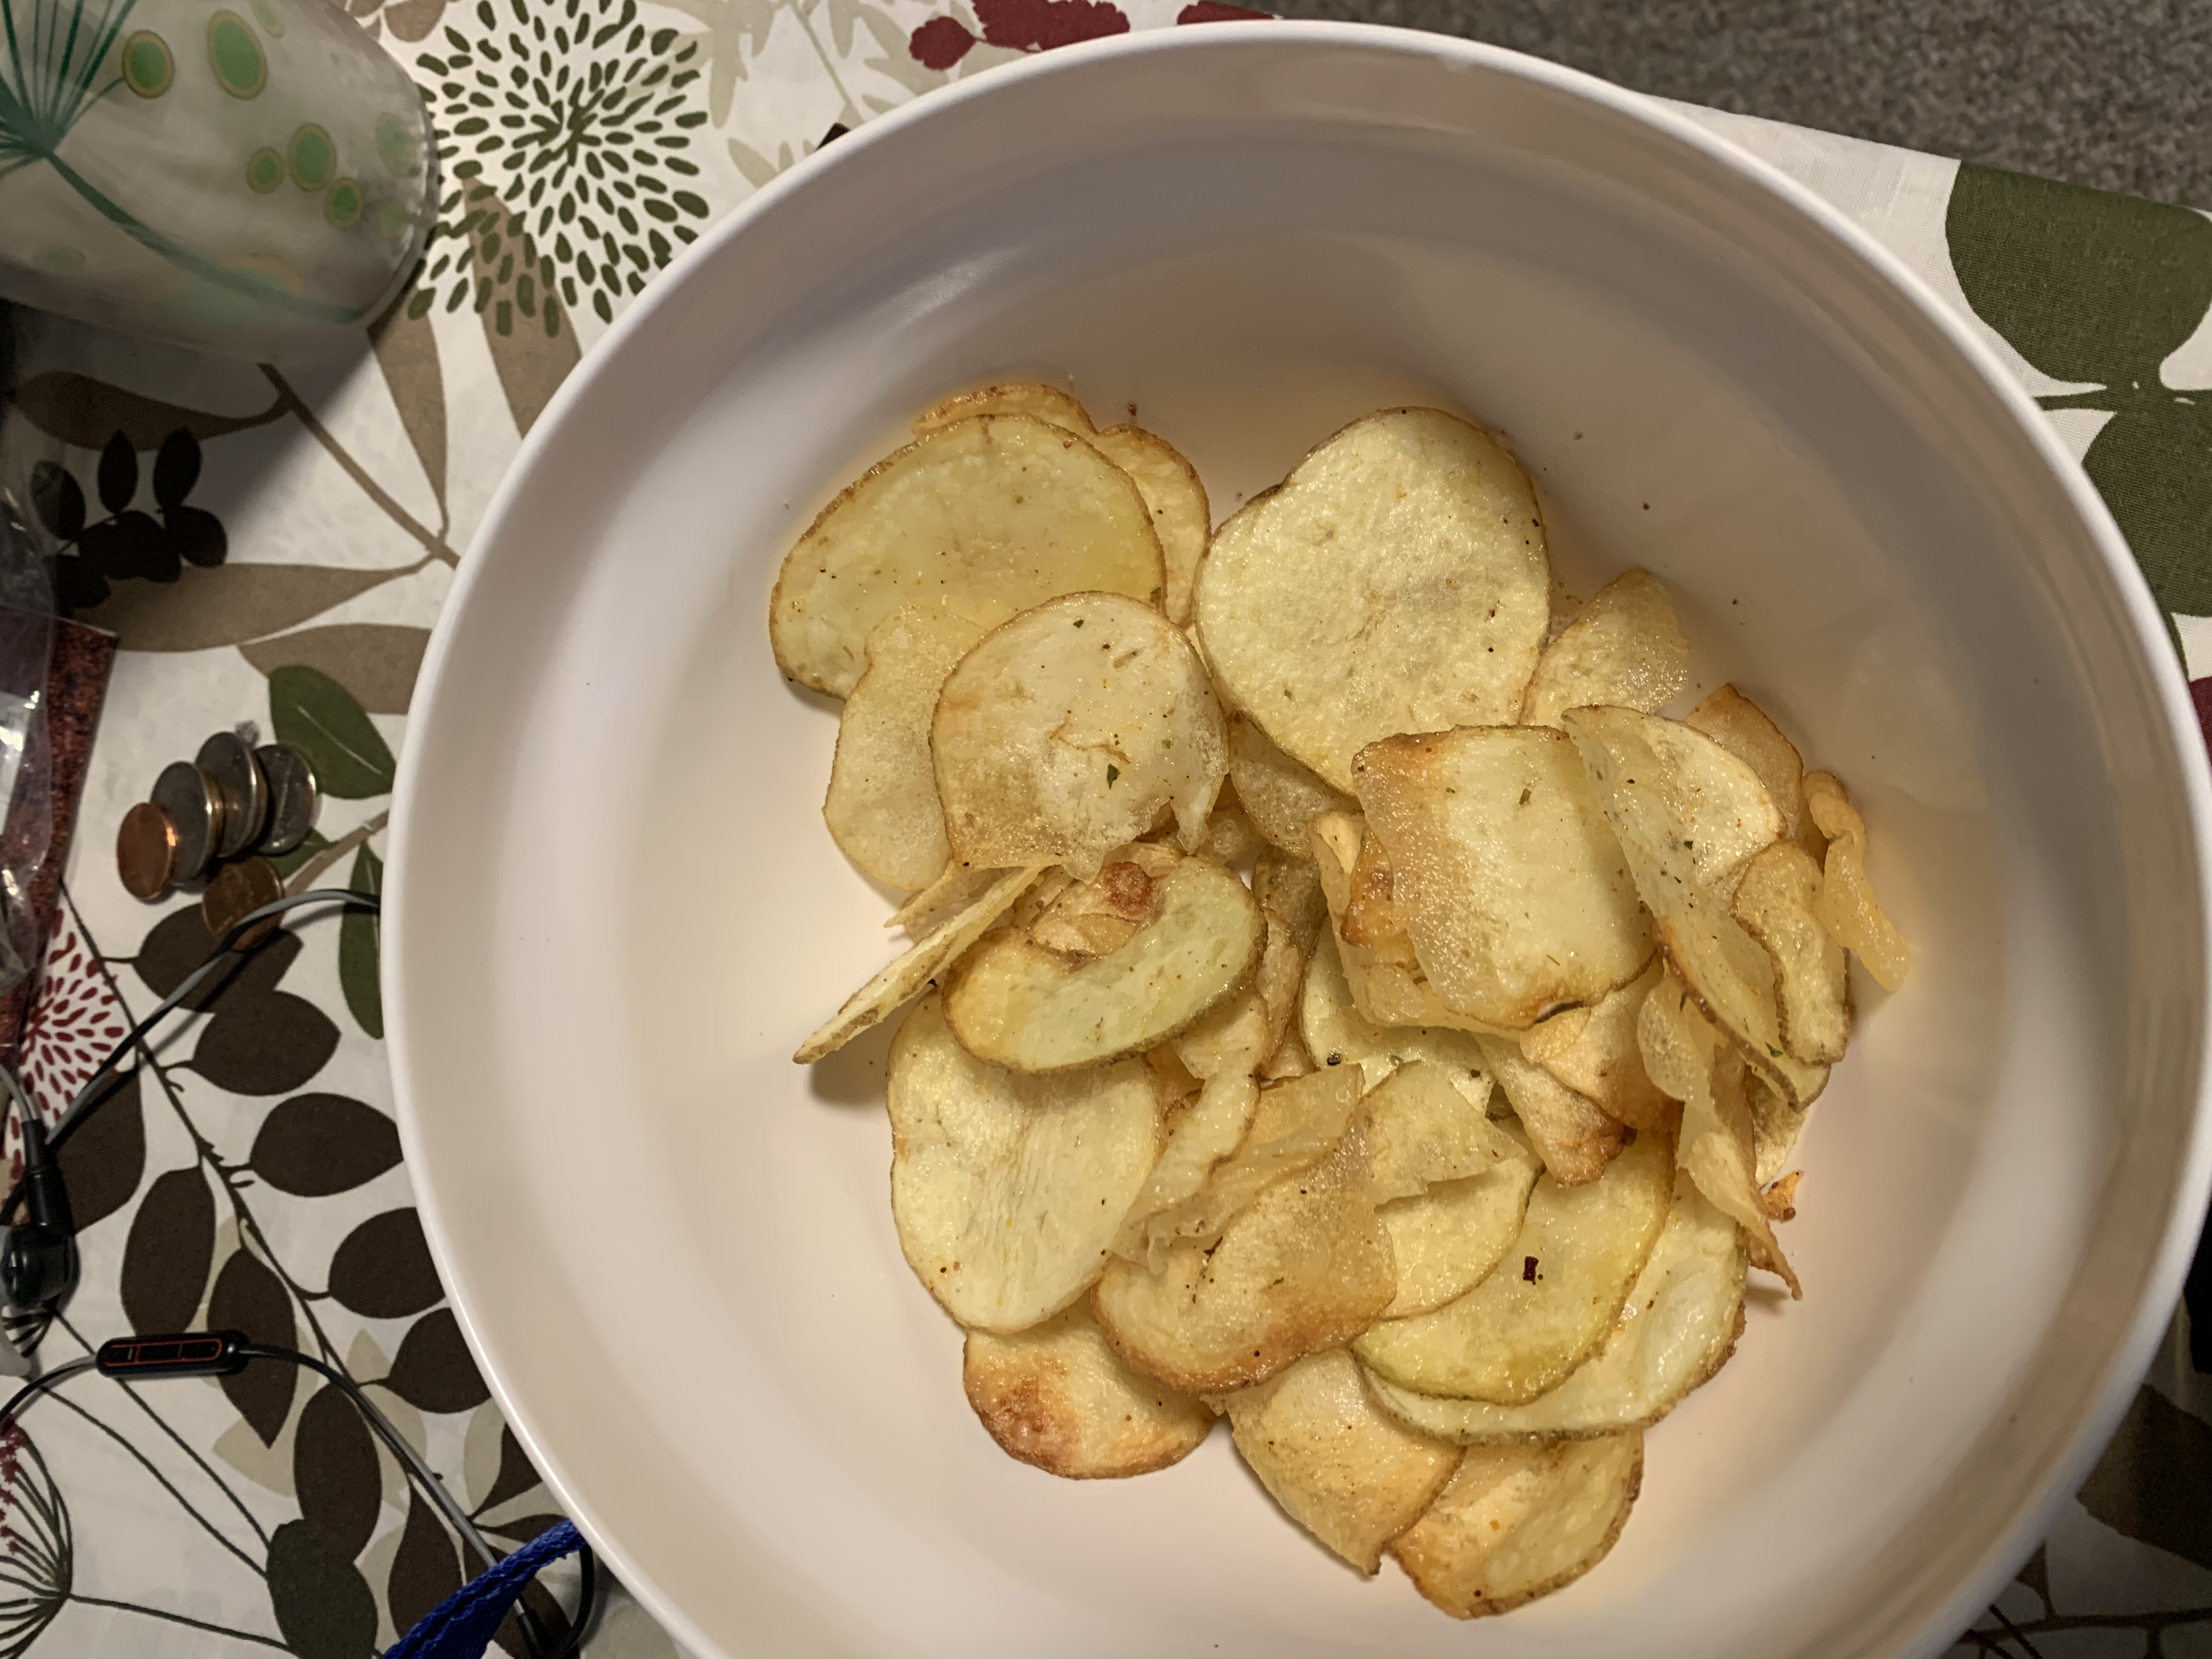 Home-made tater chips!